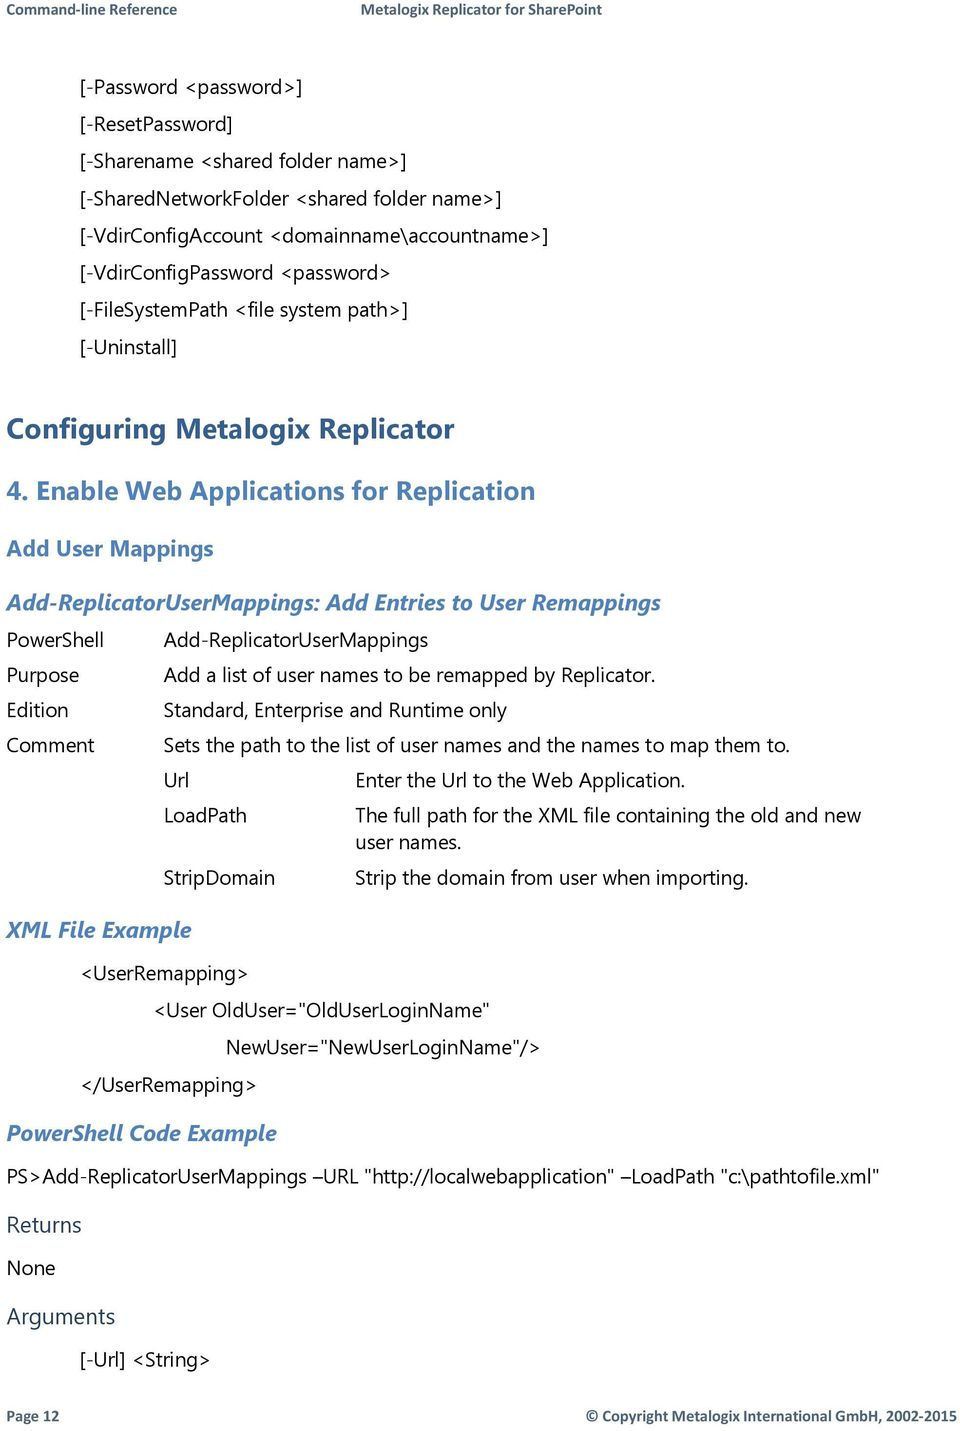 Enable Web Applications for Replication Add User Mappings Add-ReplicatorUserMappings: Add Entries to User Remappings Add-ReplicatorUserMappings Add a list of user names to be remapped by Replicator.